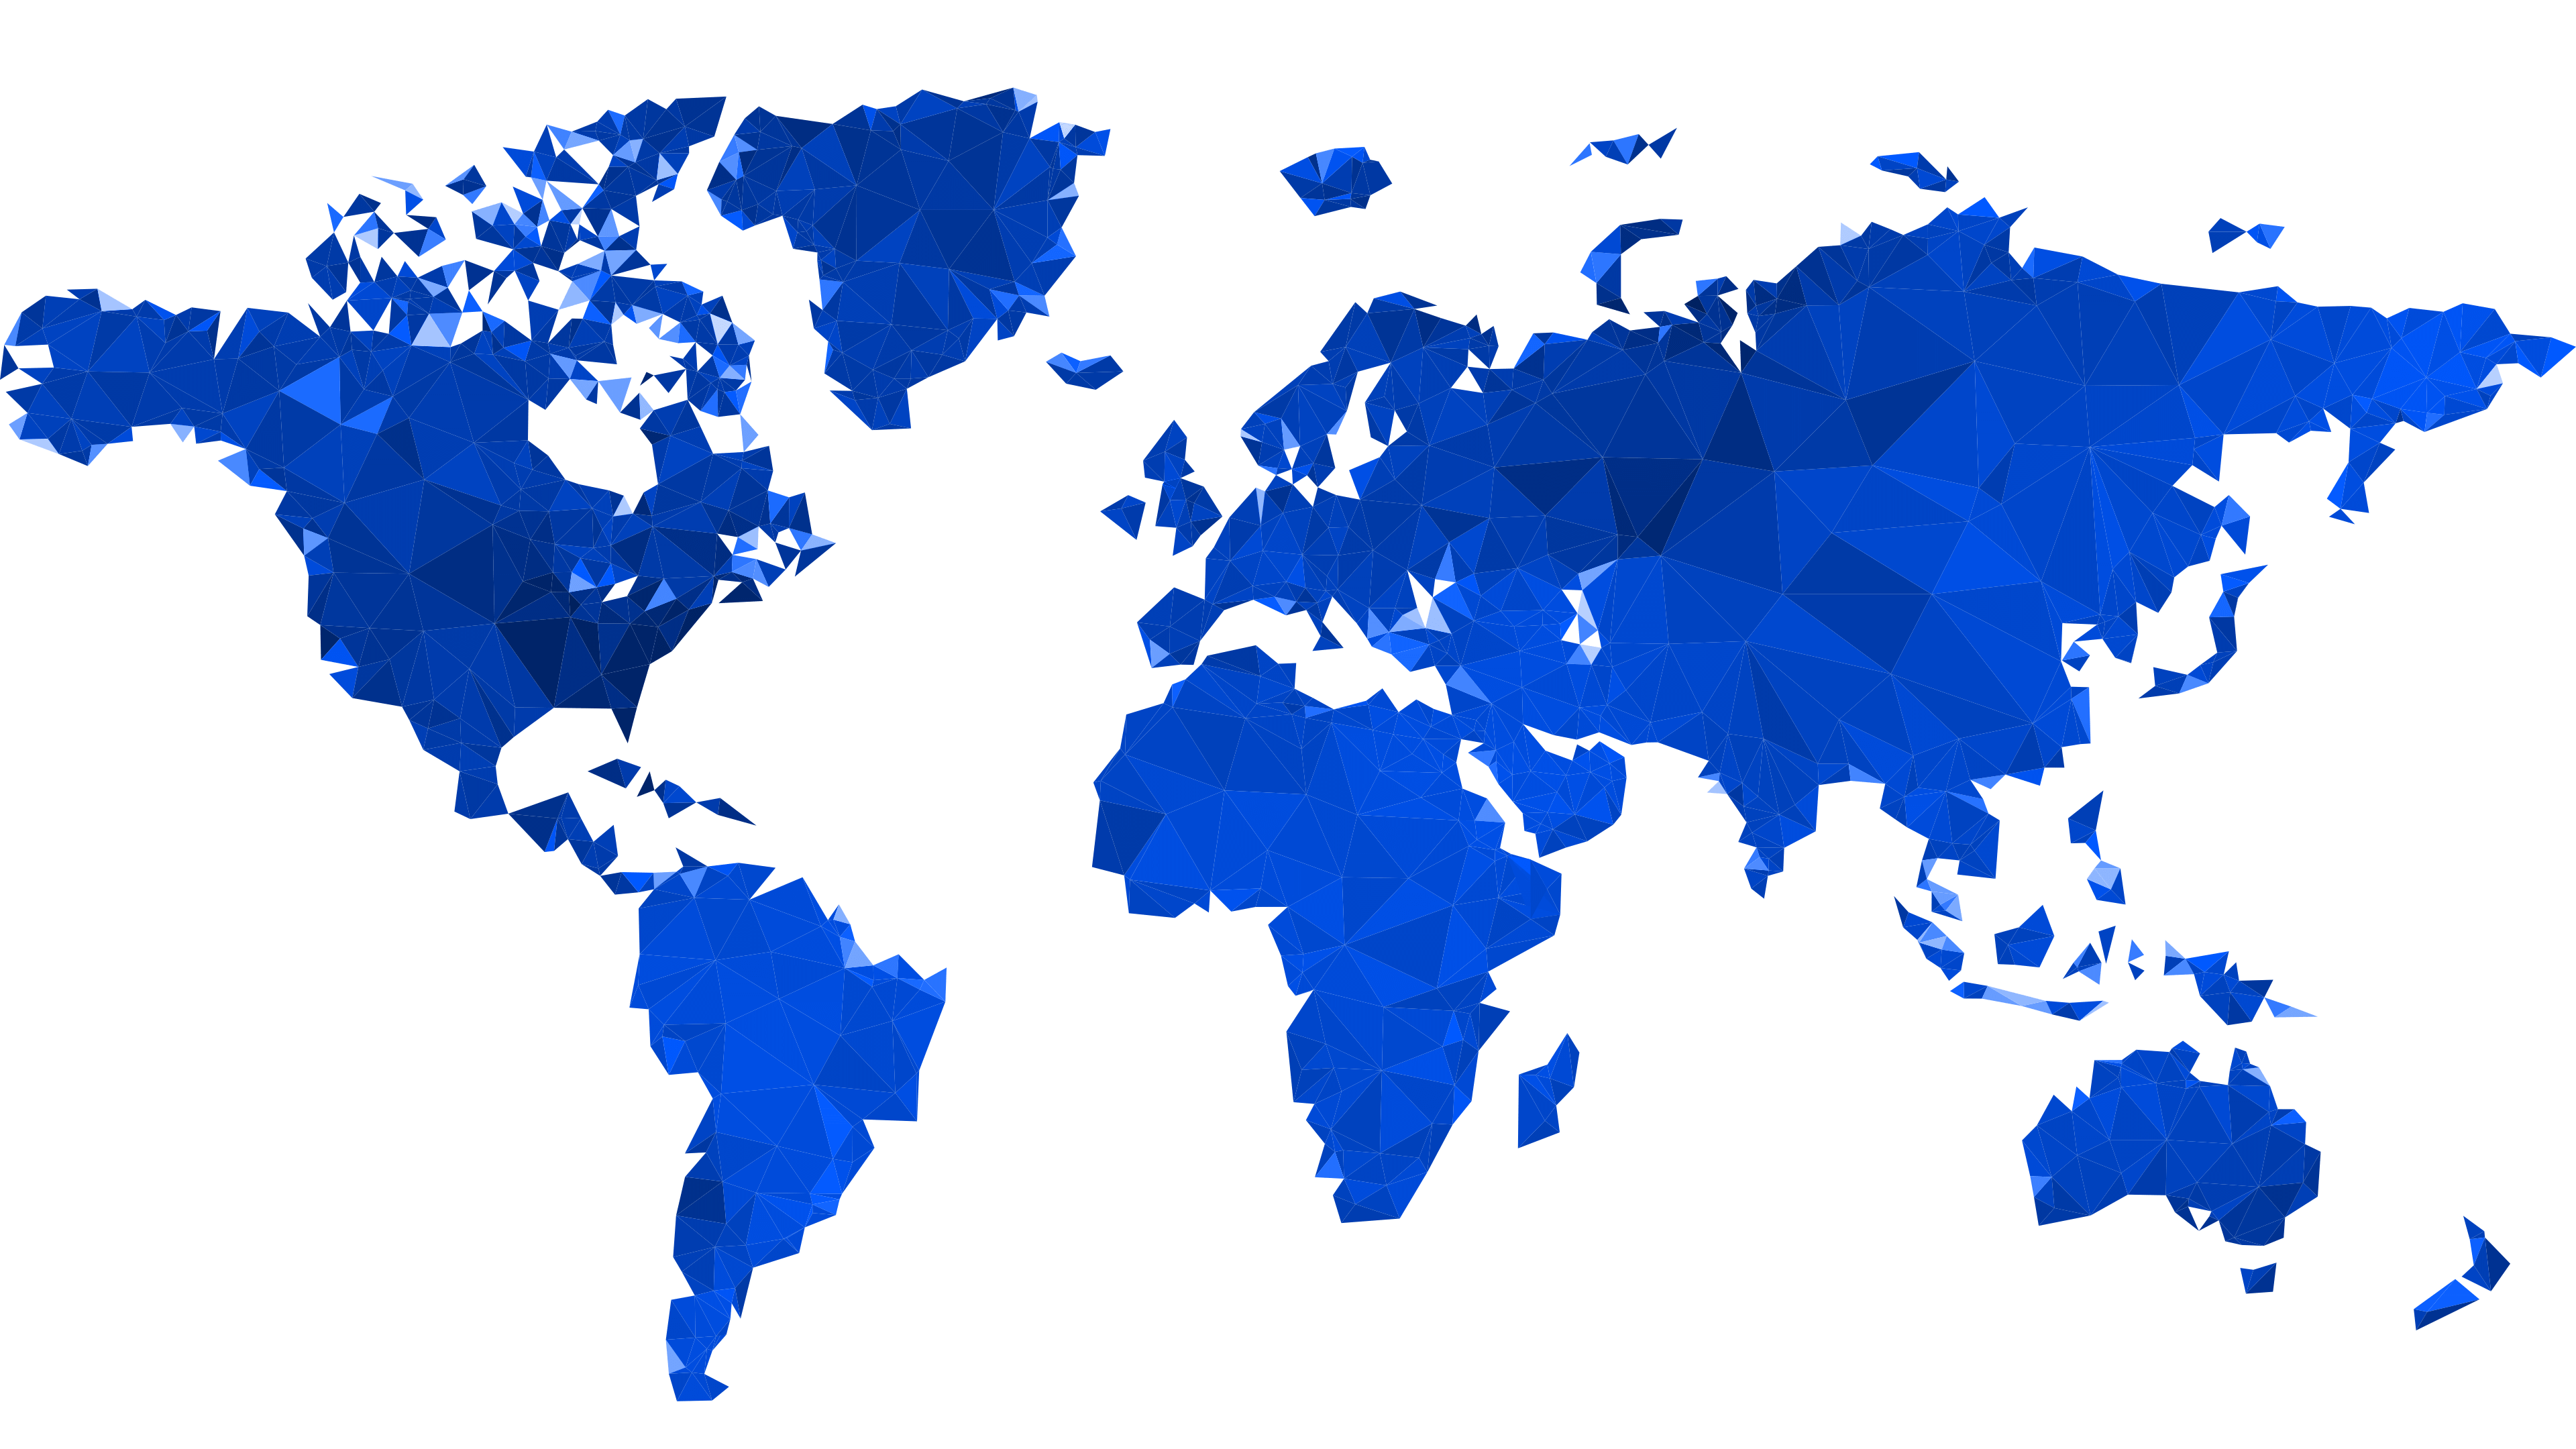 A blue geometric continental map illustrating the global presence of Cameyo